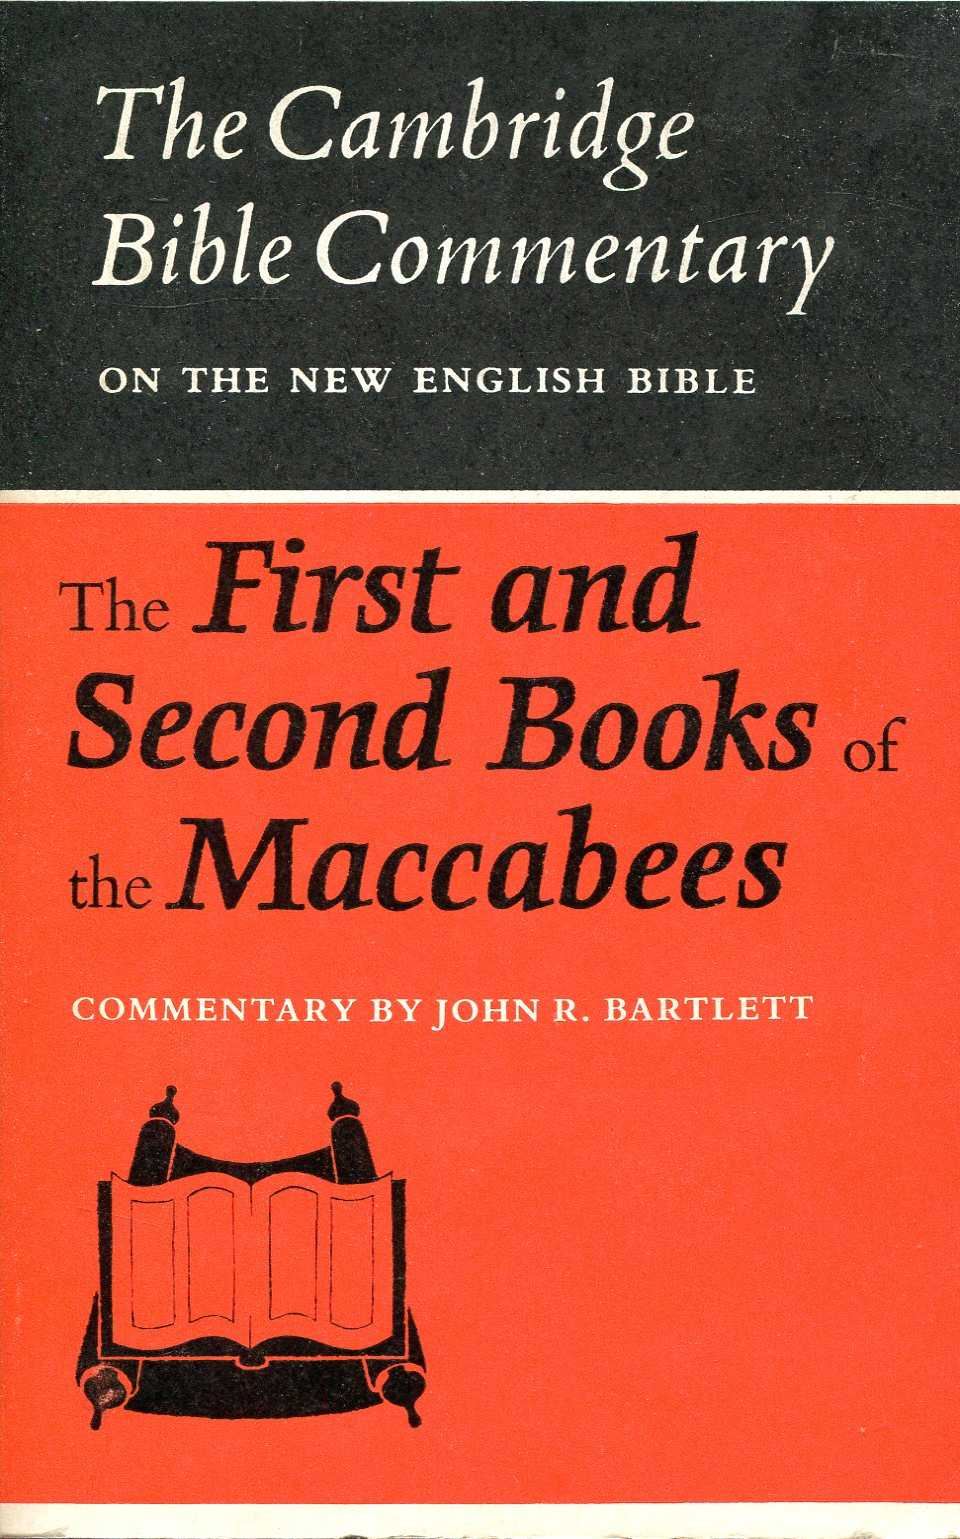 Image for The Cambridge Bible Commentary : The First and Second Books of the Maccabees